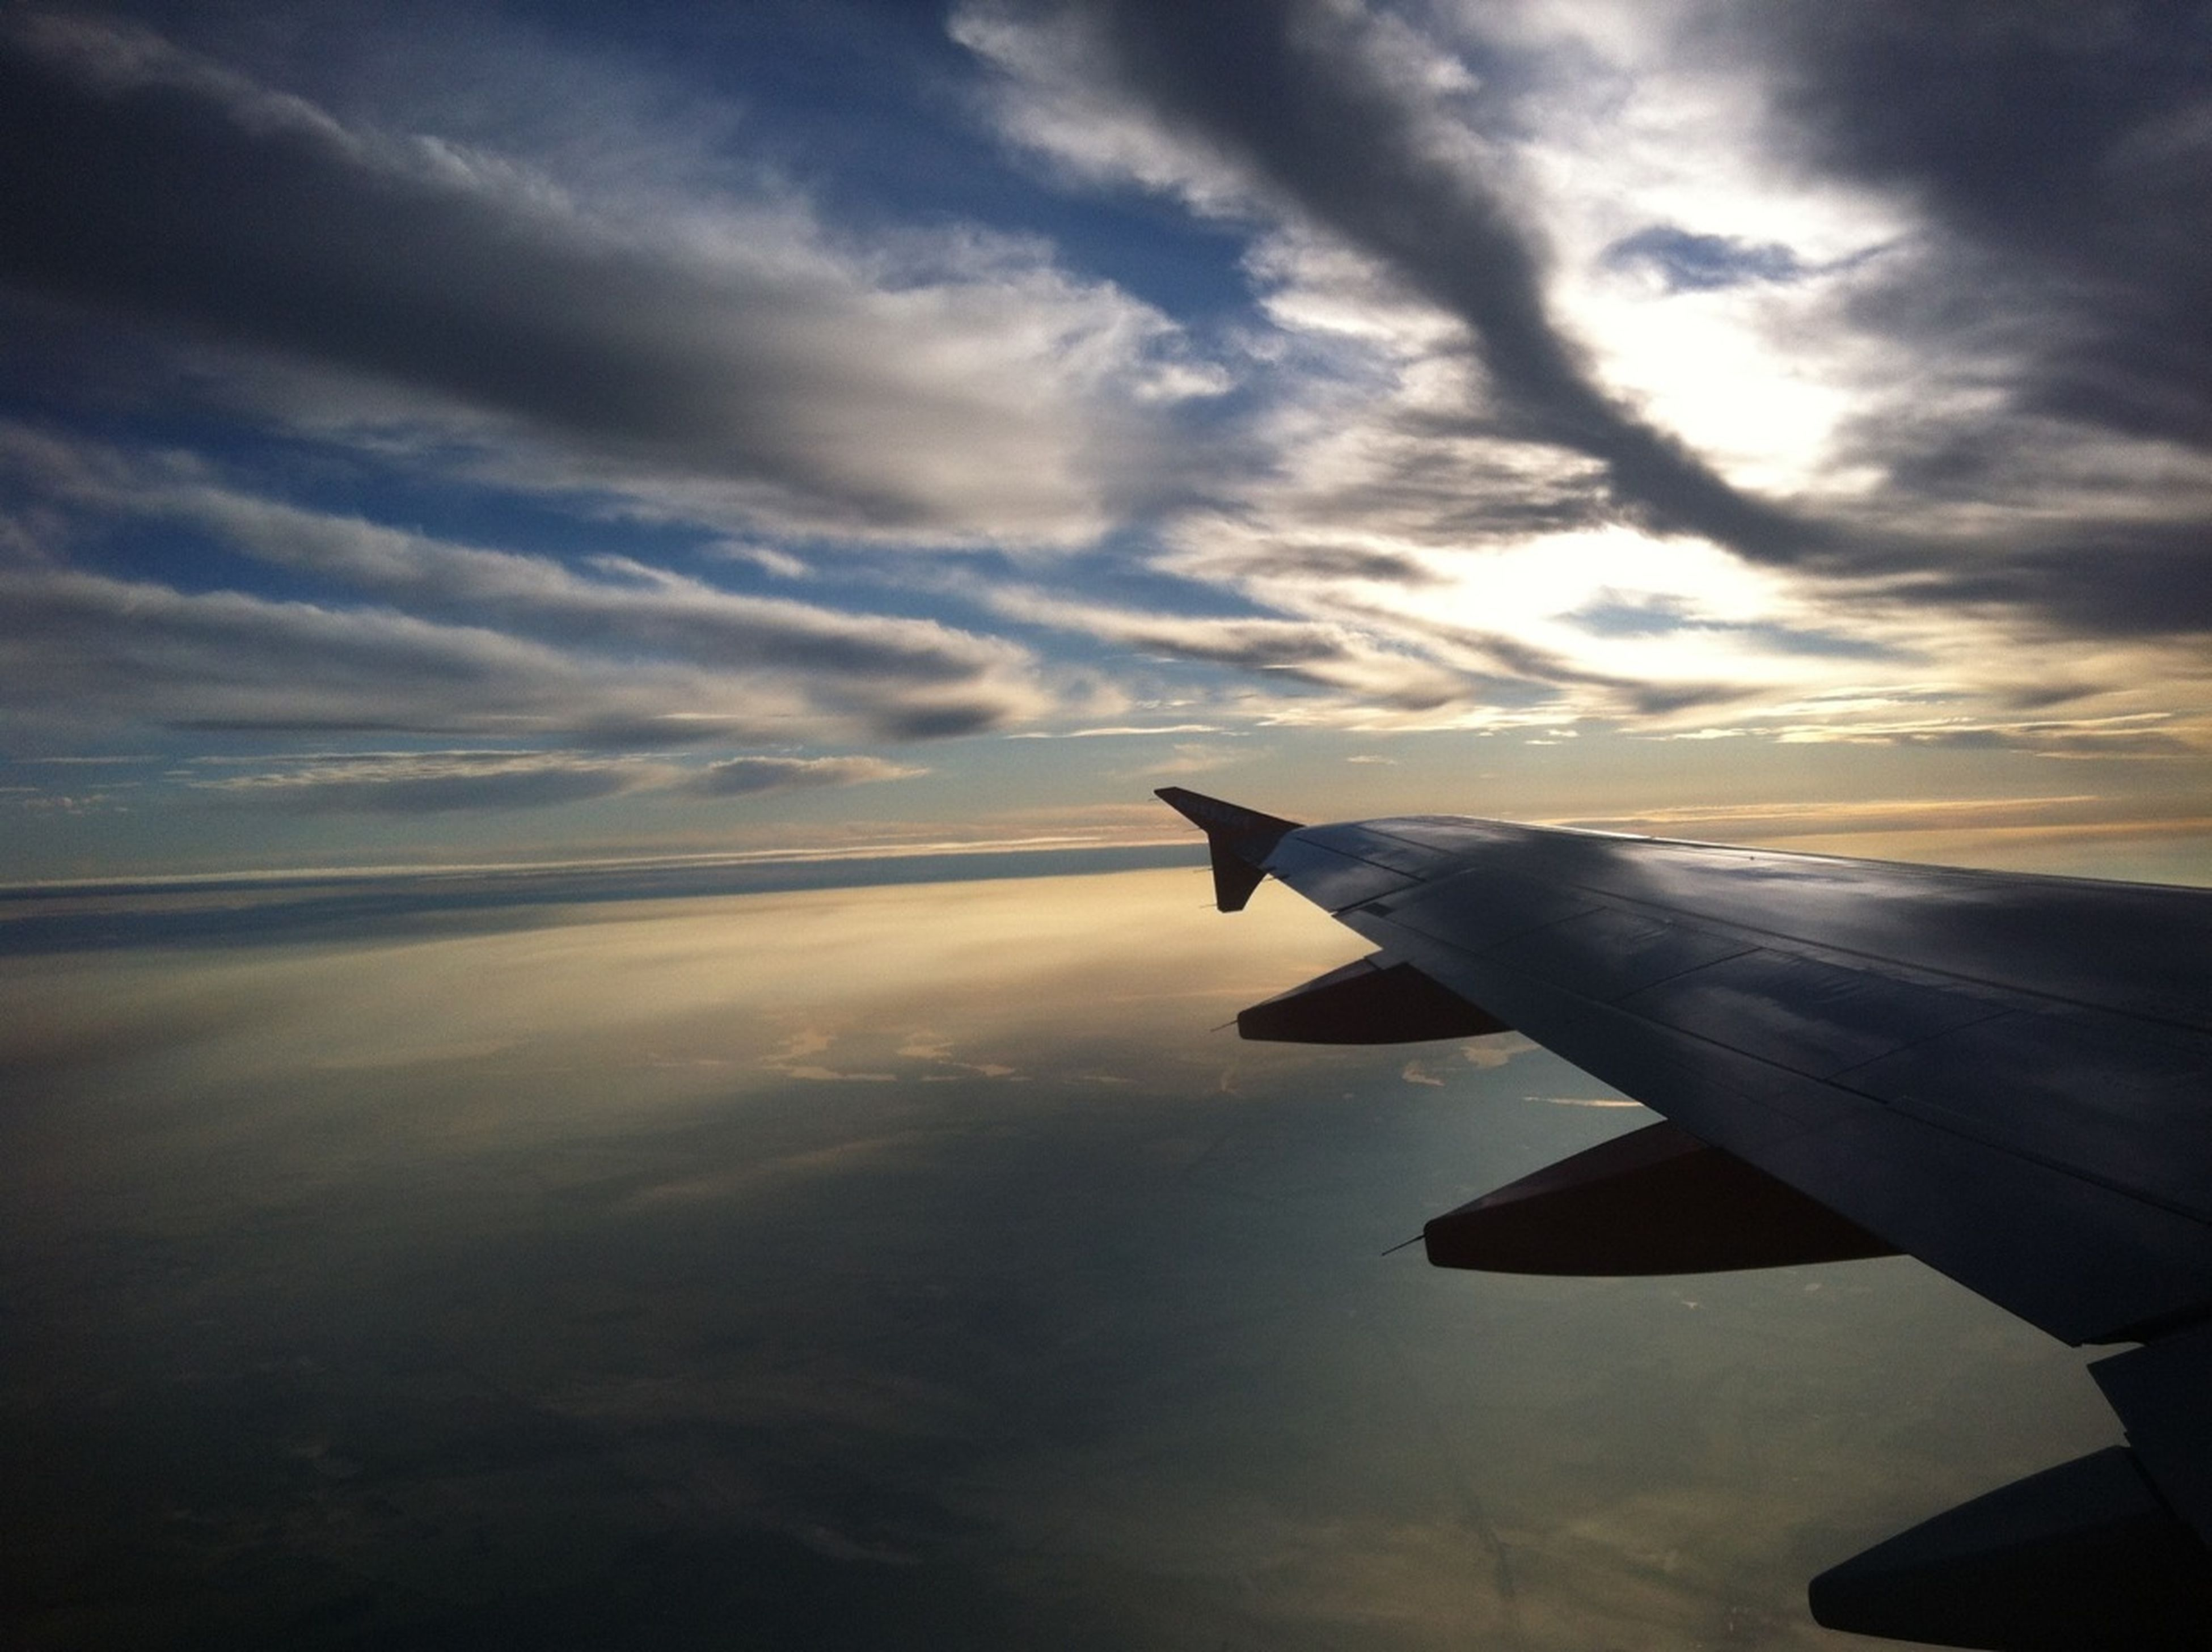 airplane, flying, sky, air vehicle, aircraft wing, sunset, cloud - sky, transportation, scenics, mid-air, beauty in nature, sea, mode of transport, part of, horizon over water, cloud, nature, travel, cropped, tranquil scene